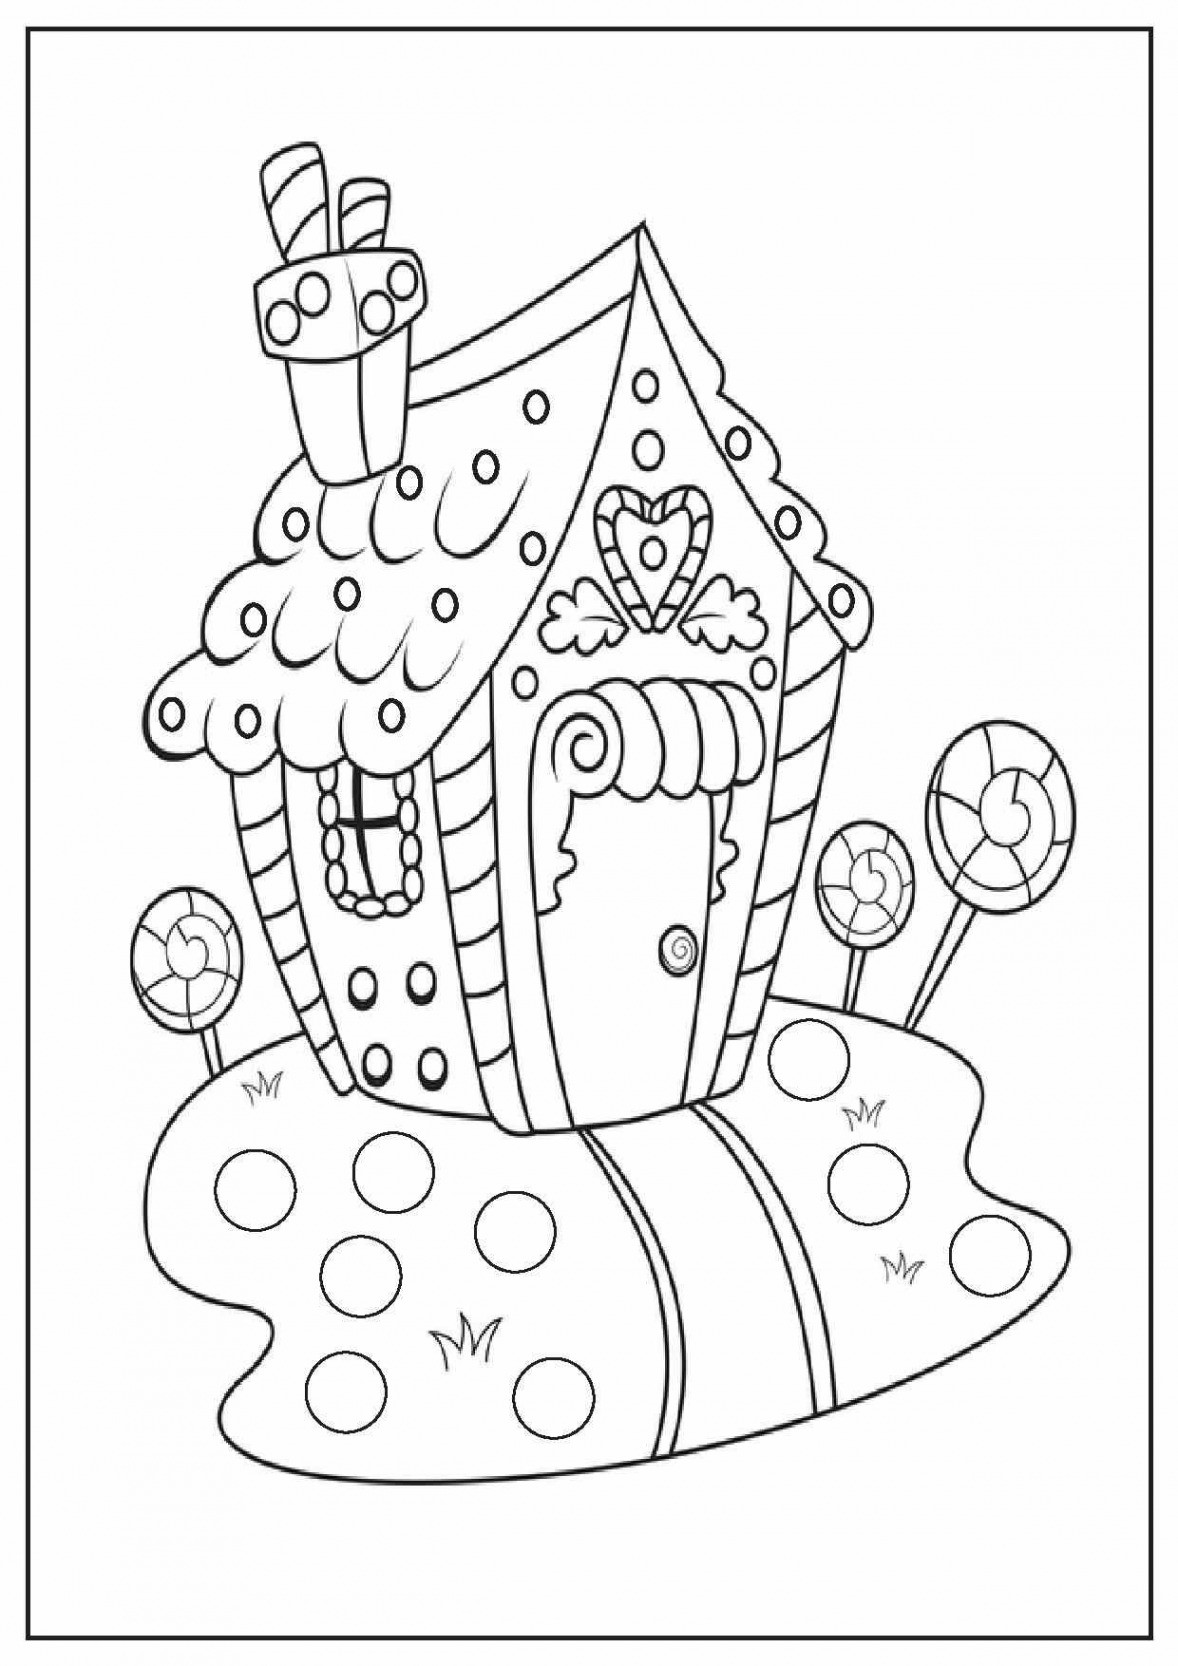 Christmas Coloring Worksheets Math With Pages Grade 1 Printable Educations For Kids